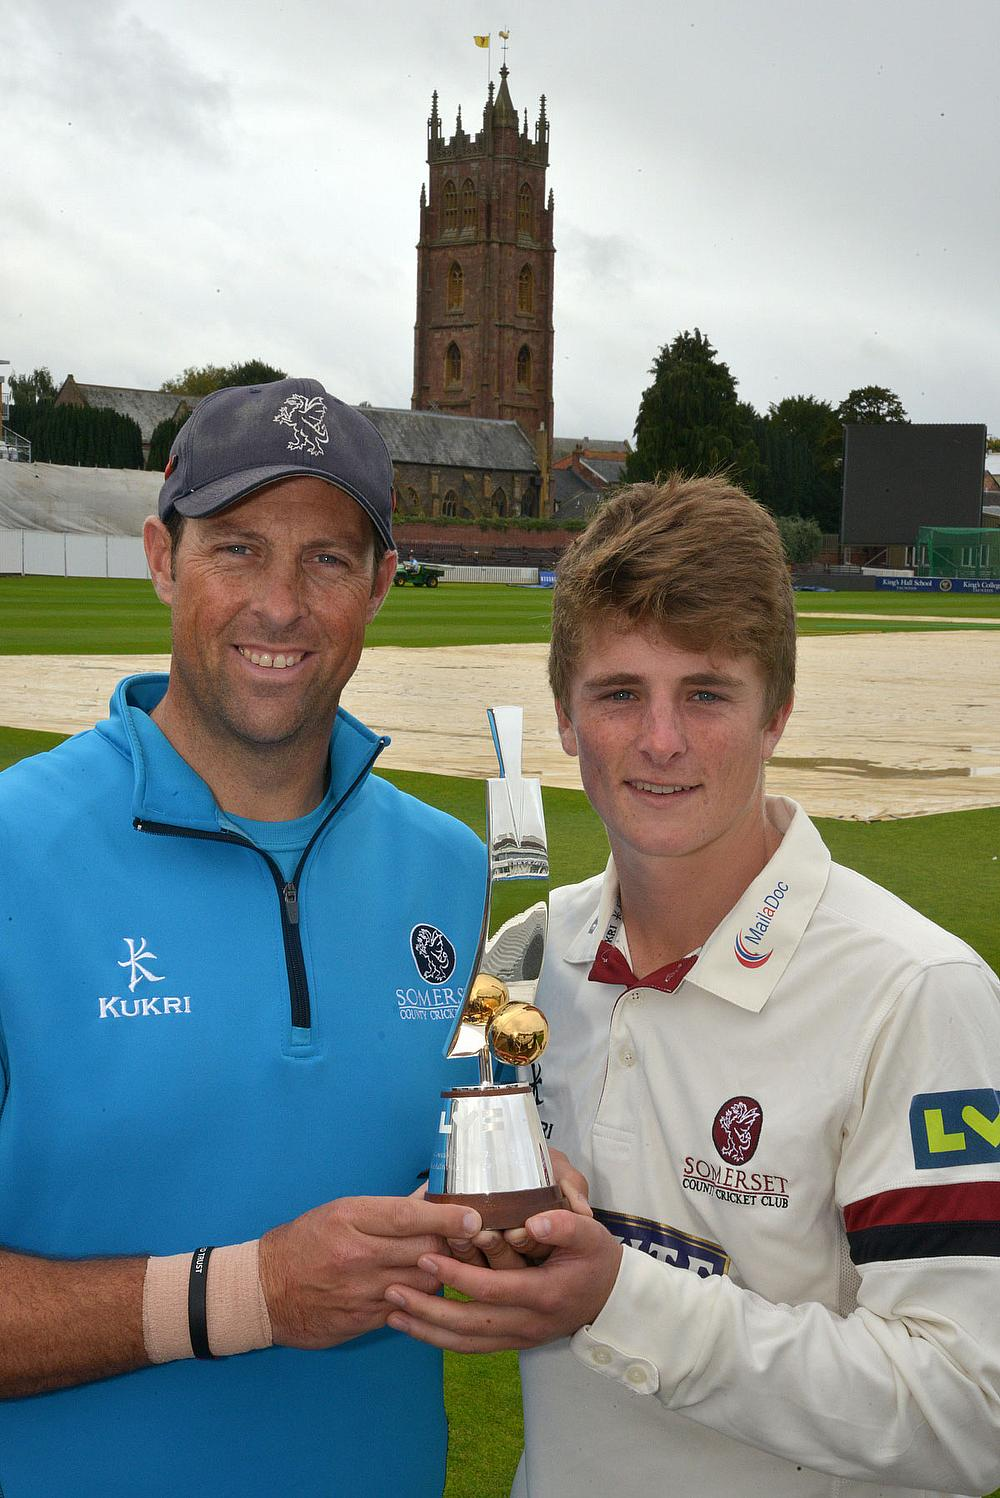 Tom Abell (right) with the award, alongside Marcus Trescothick